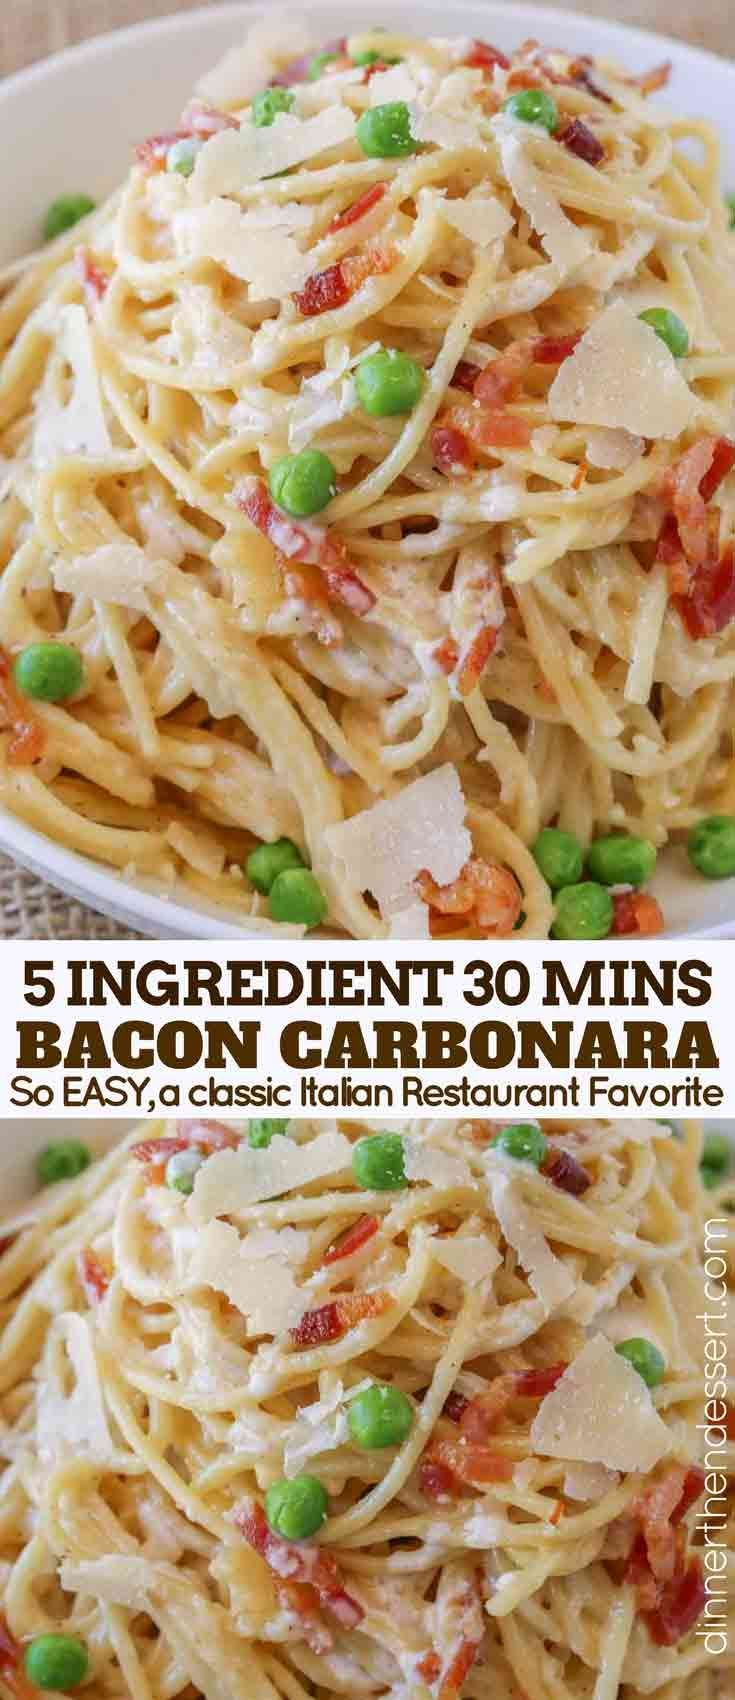 Bacon Carbonara Pasta is an Italian classic pasta dish with creamy egg sauce with noodles, pasta, e